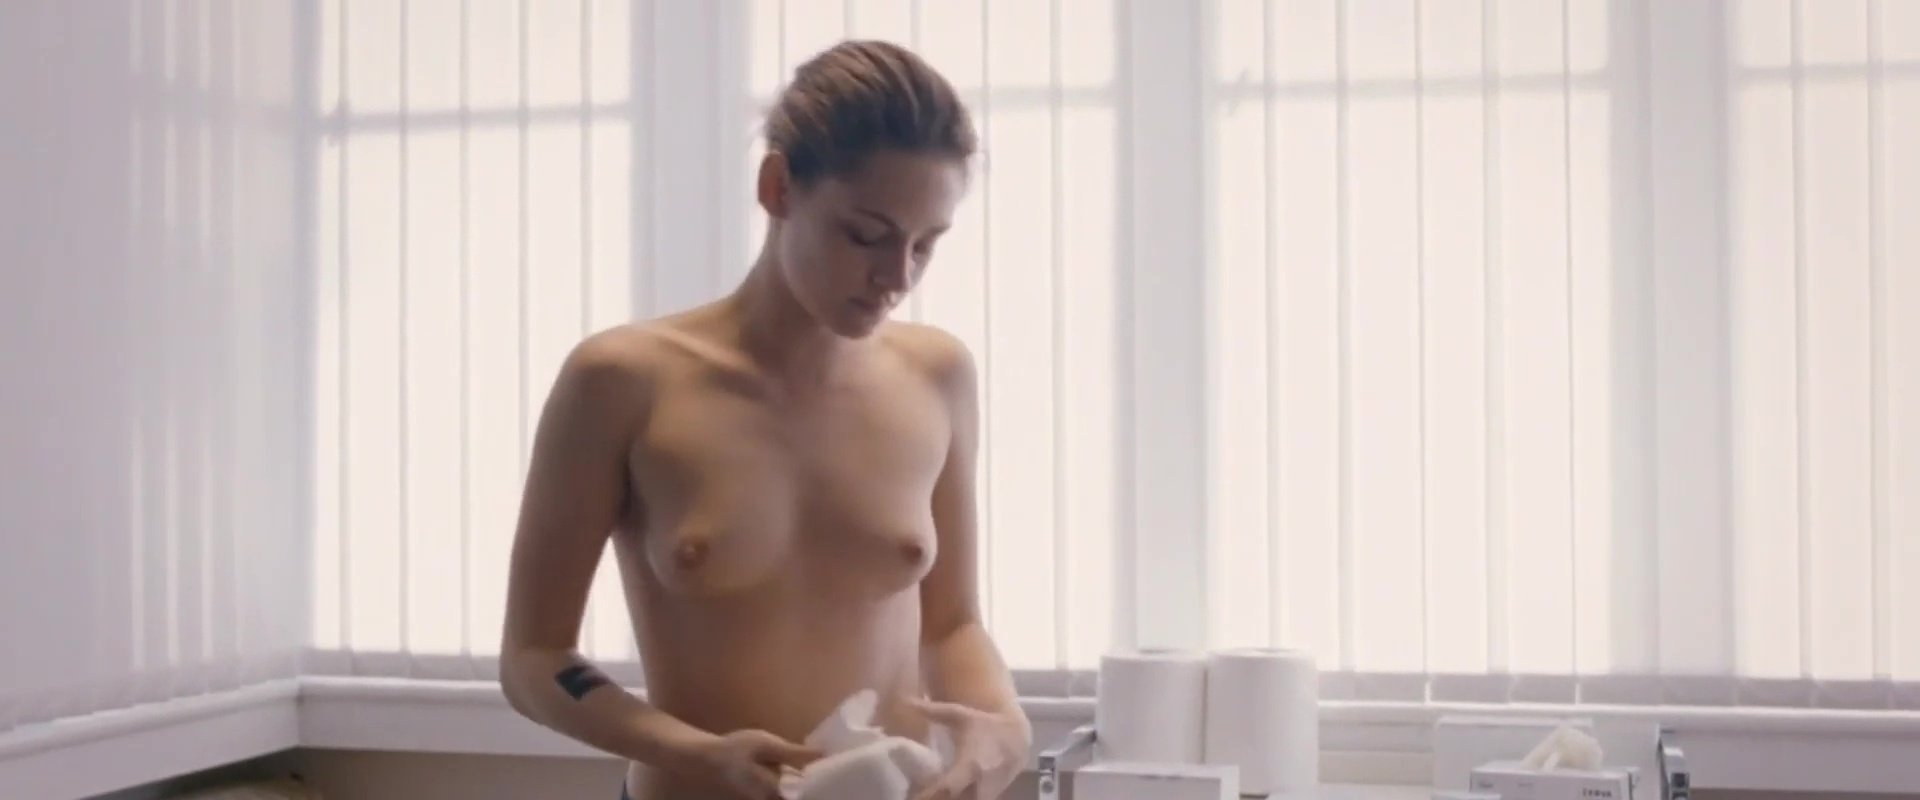 Talented phrase Naked kristen stewart nude are